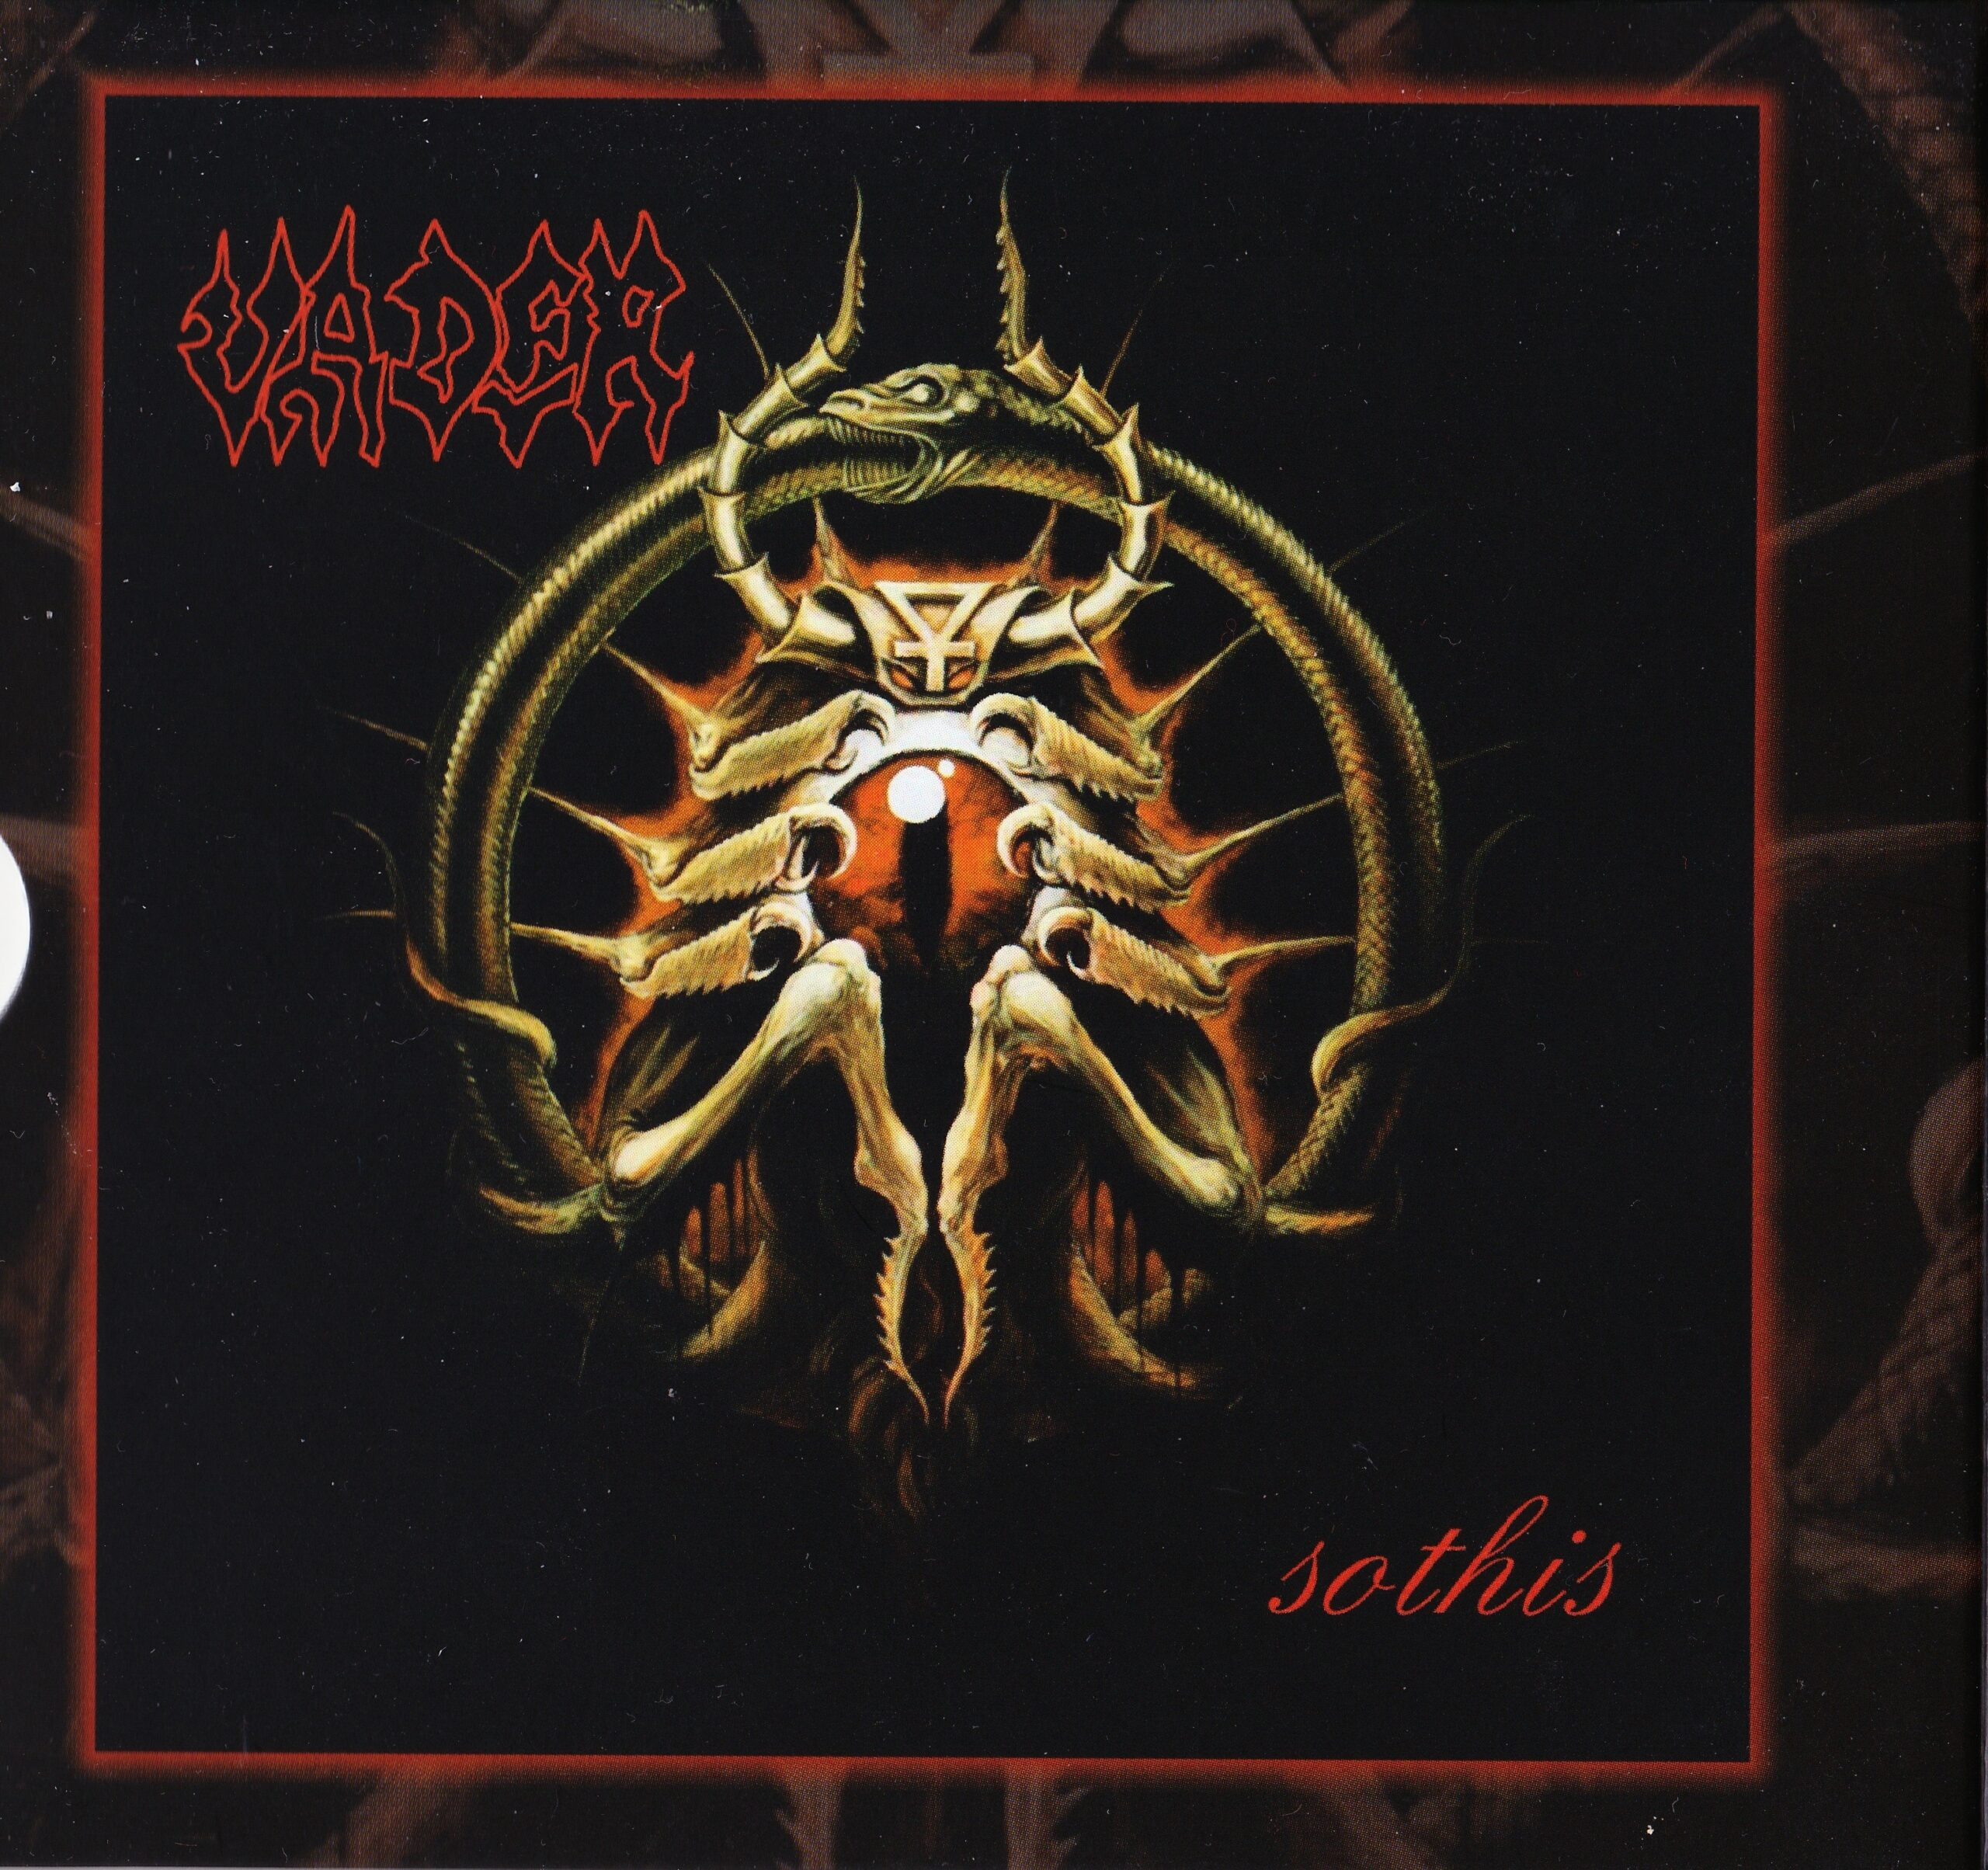 Vader — Sothis EP (1994)